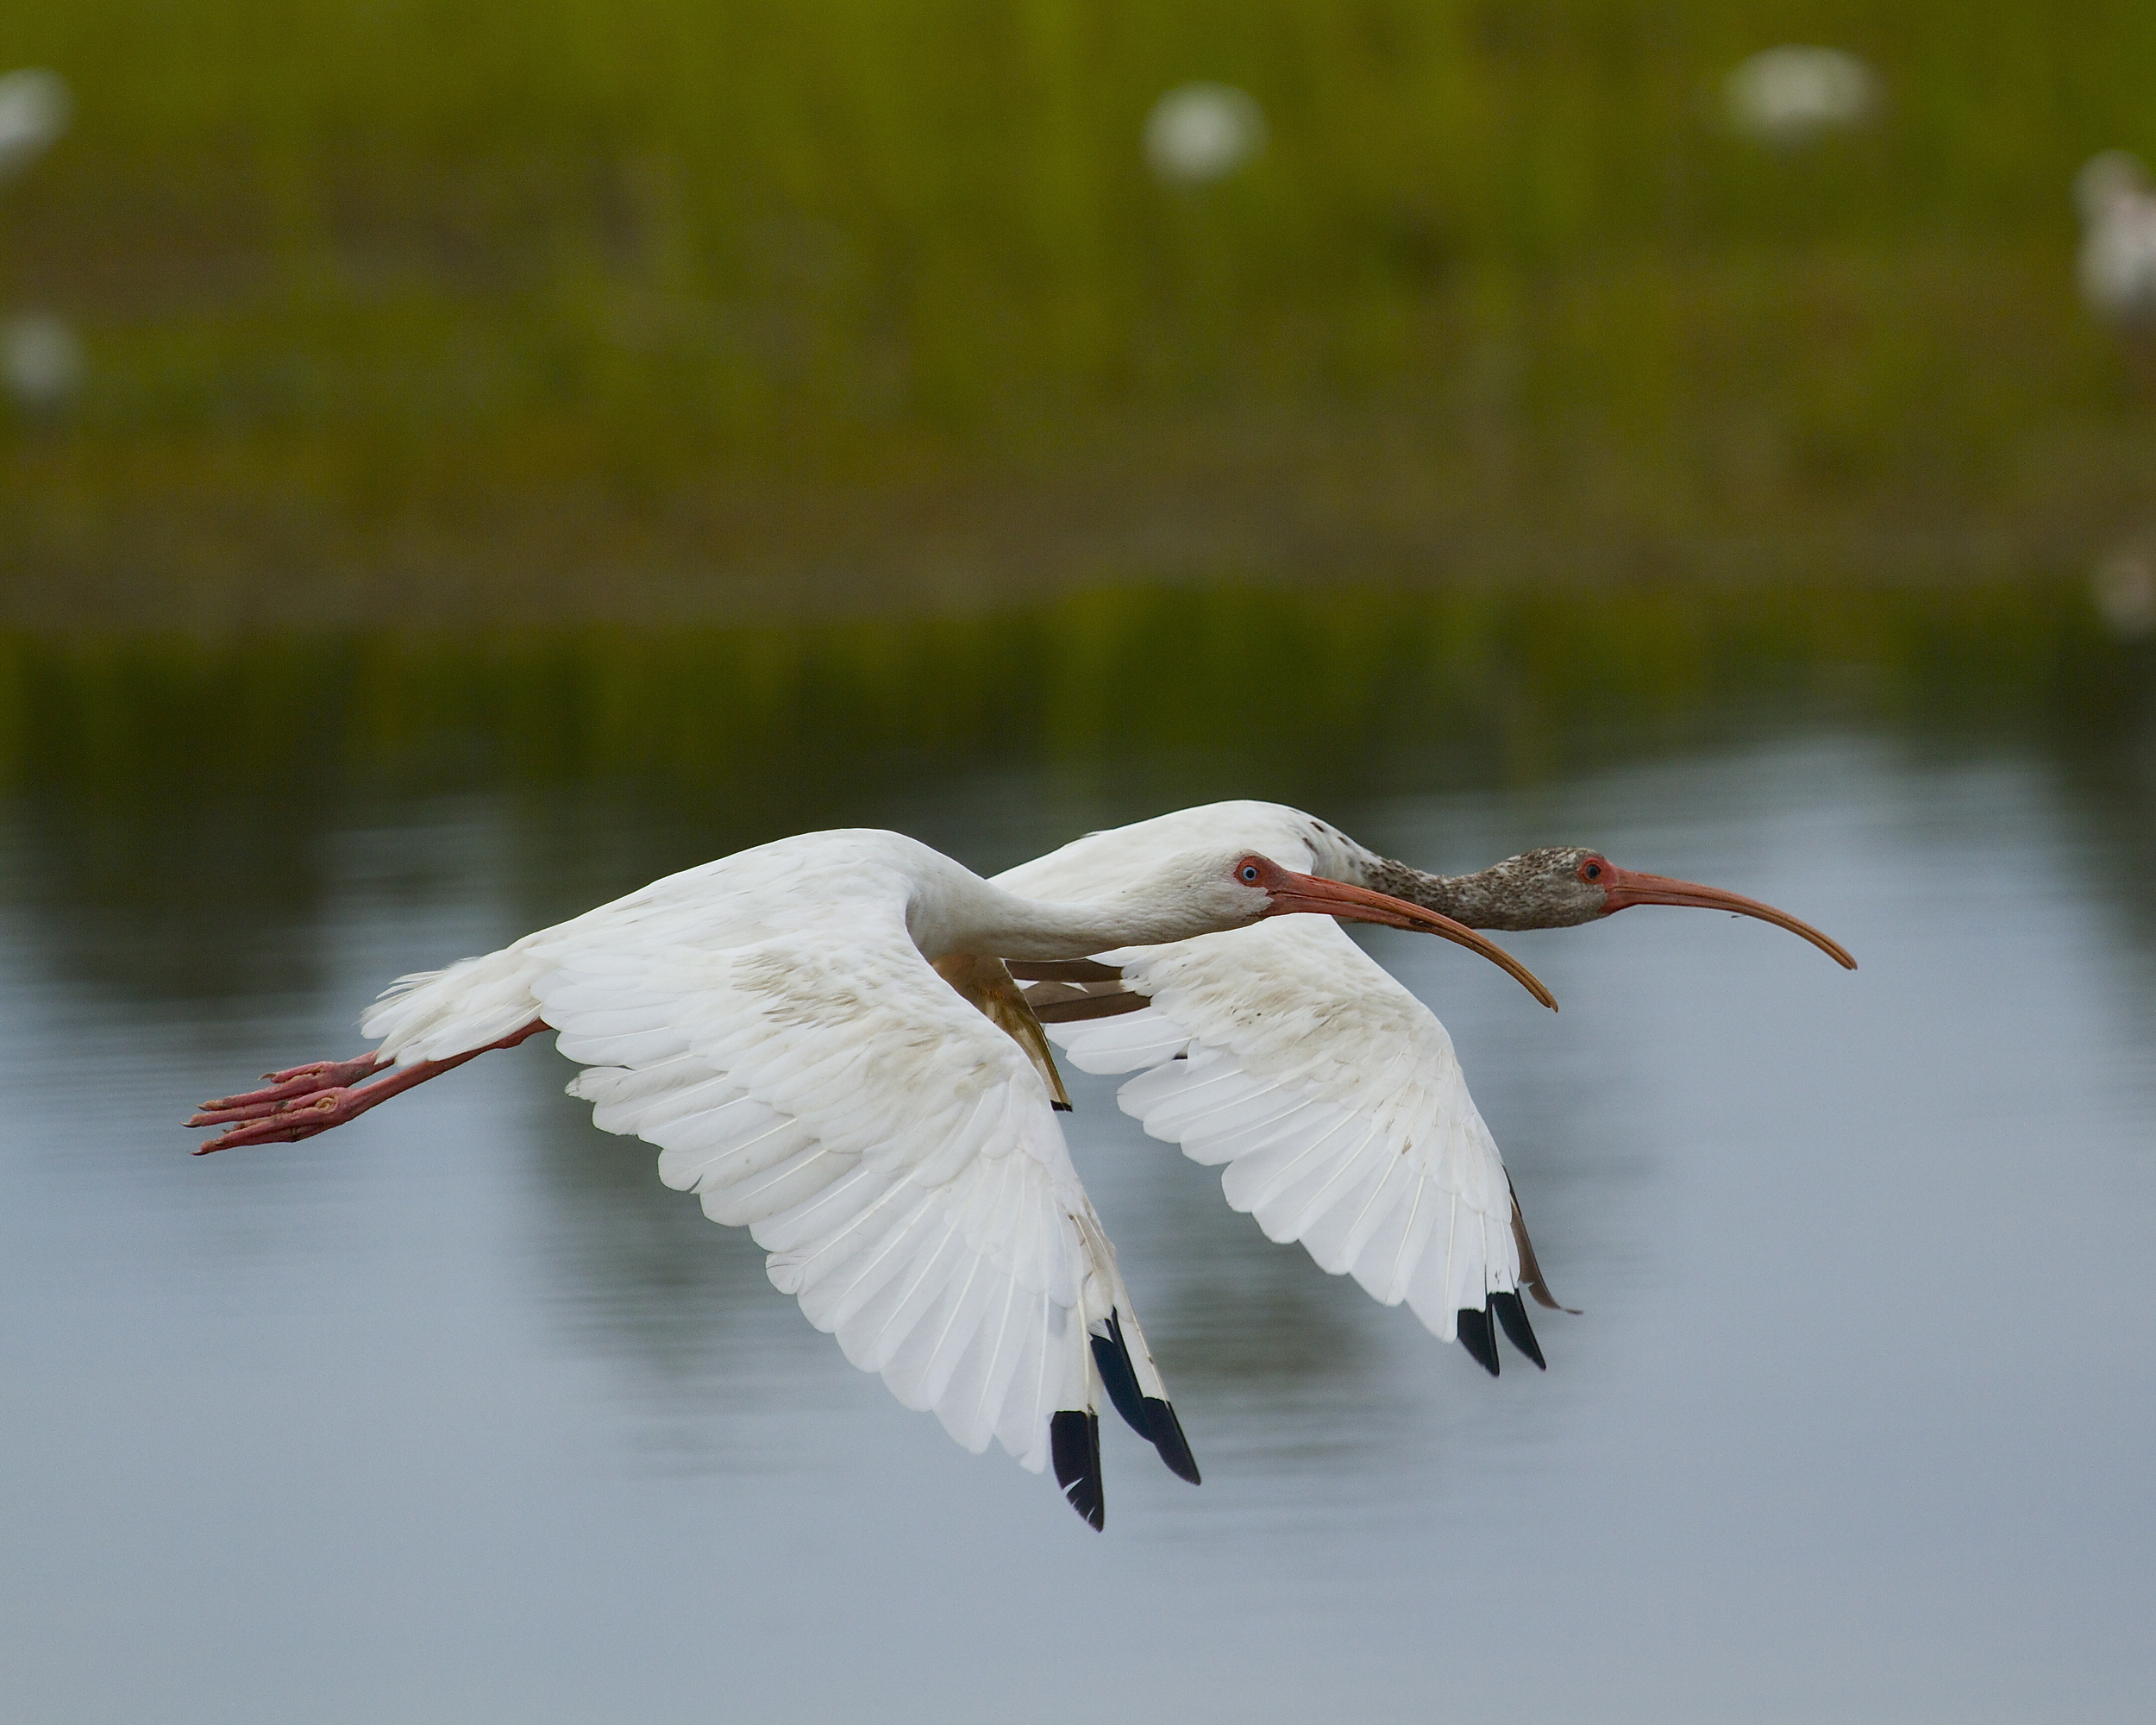 You have heard of synchronized swimming…this is synchronized winging.